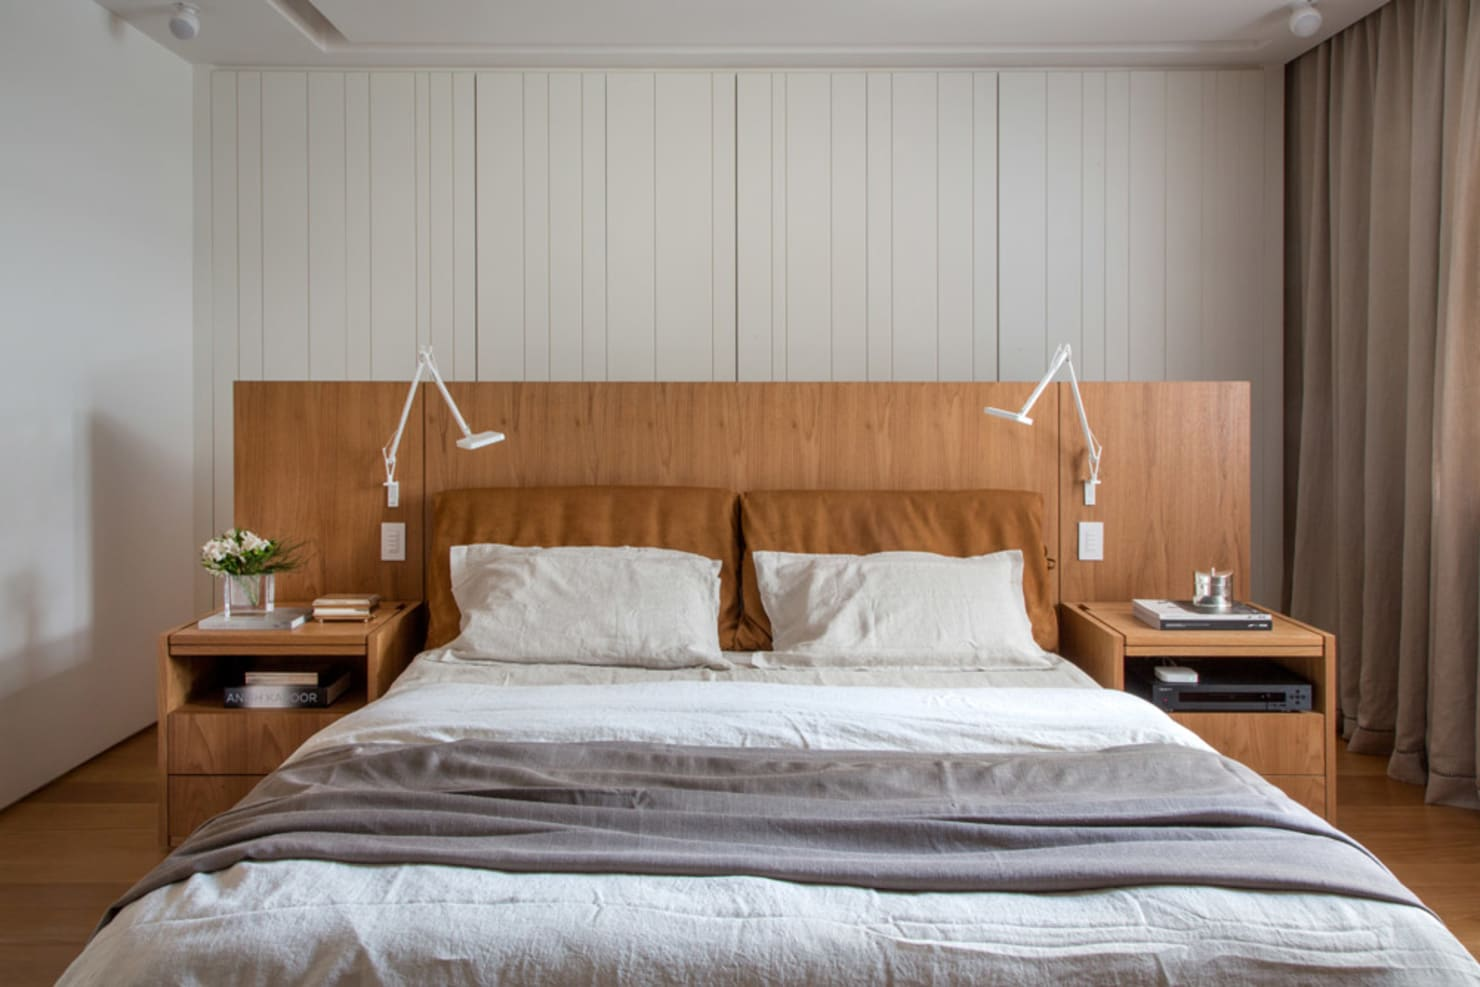 15 perfect ideas for a small bedroom